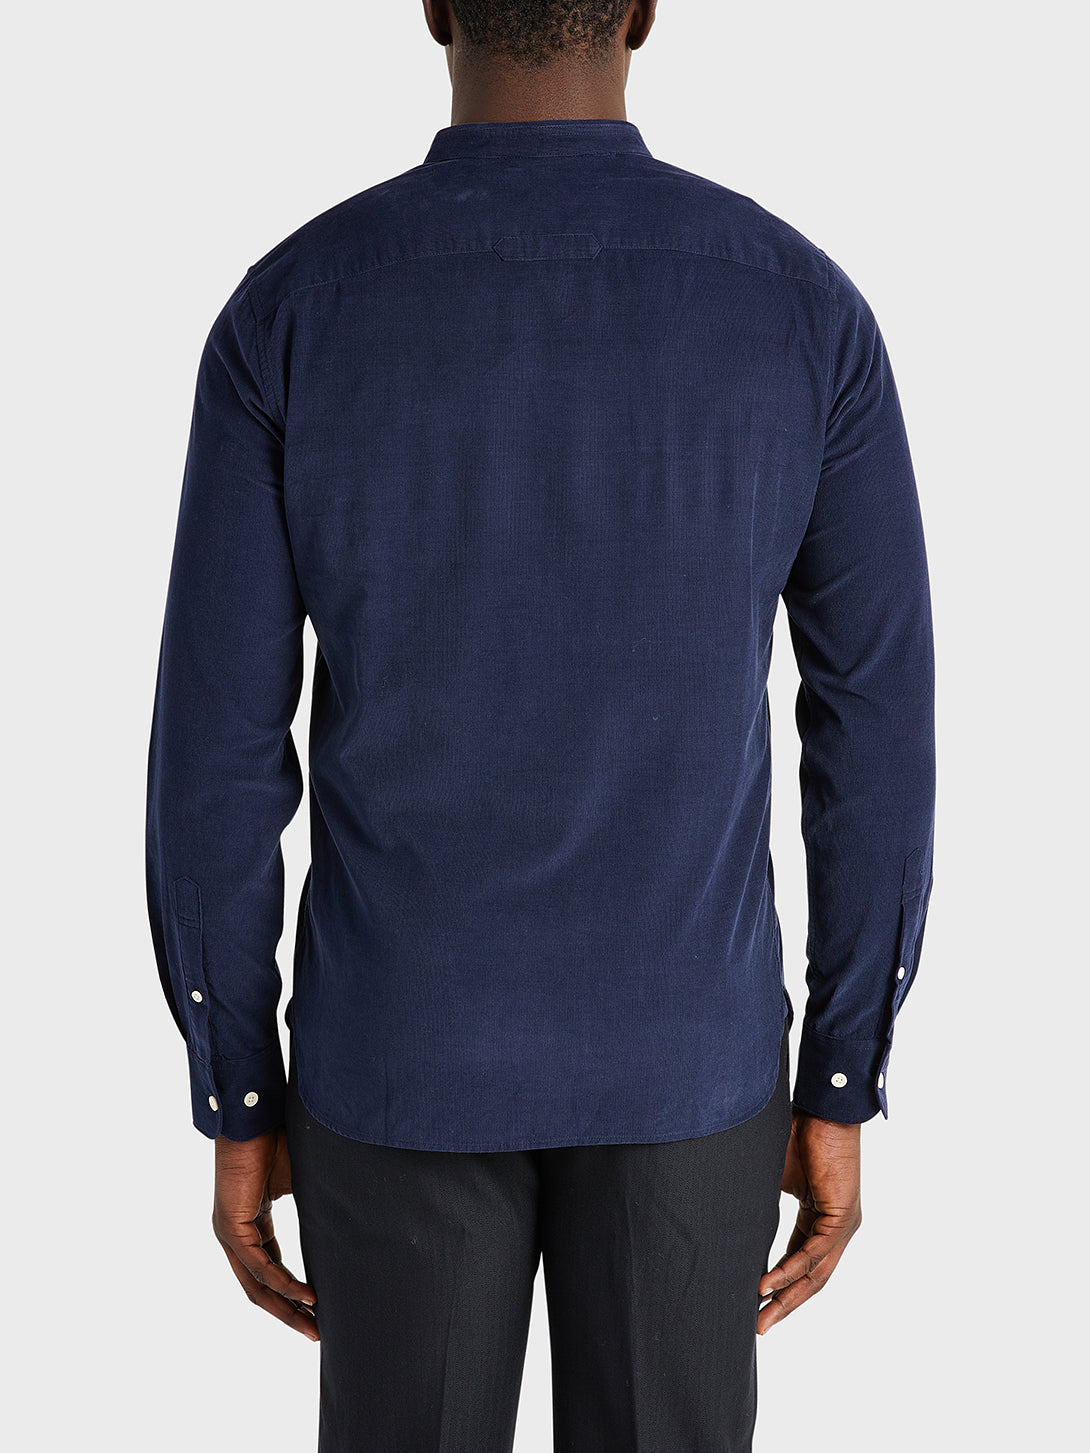 black friday deals ONS Clothing Men's shirt in NAVY